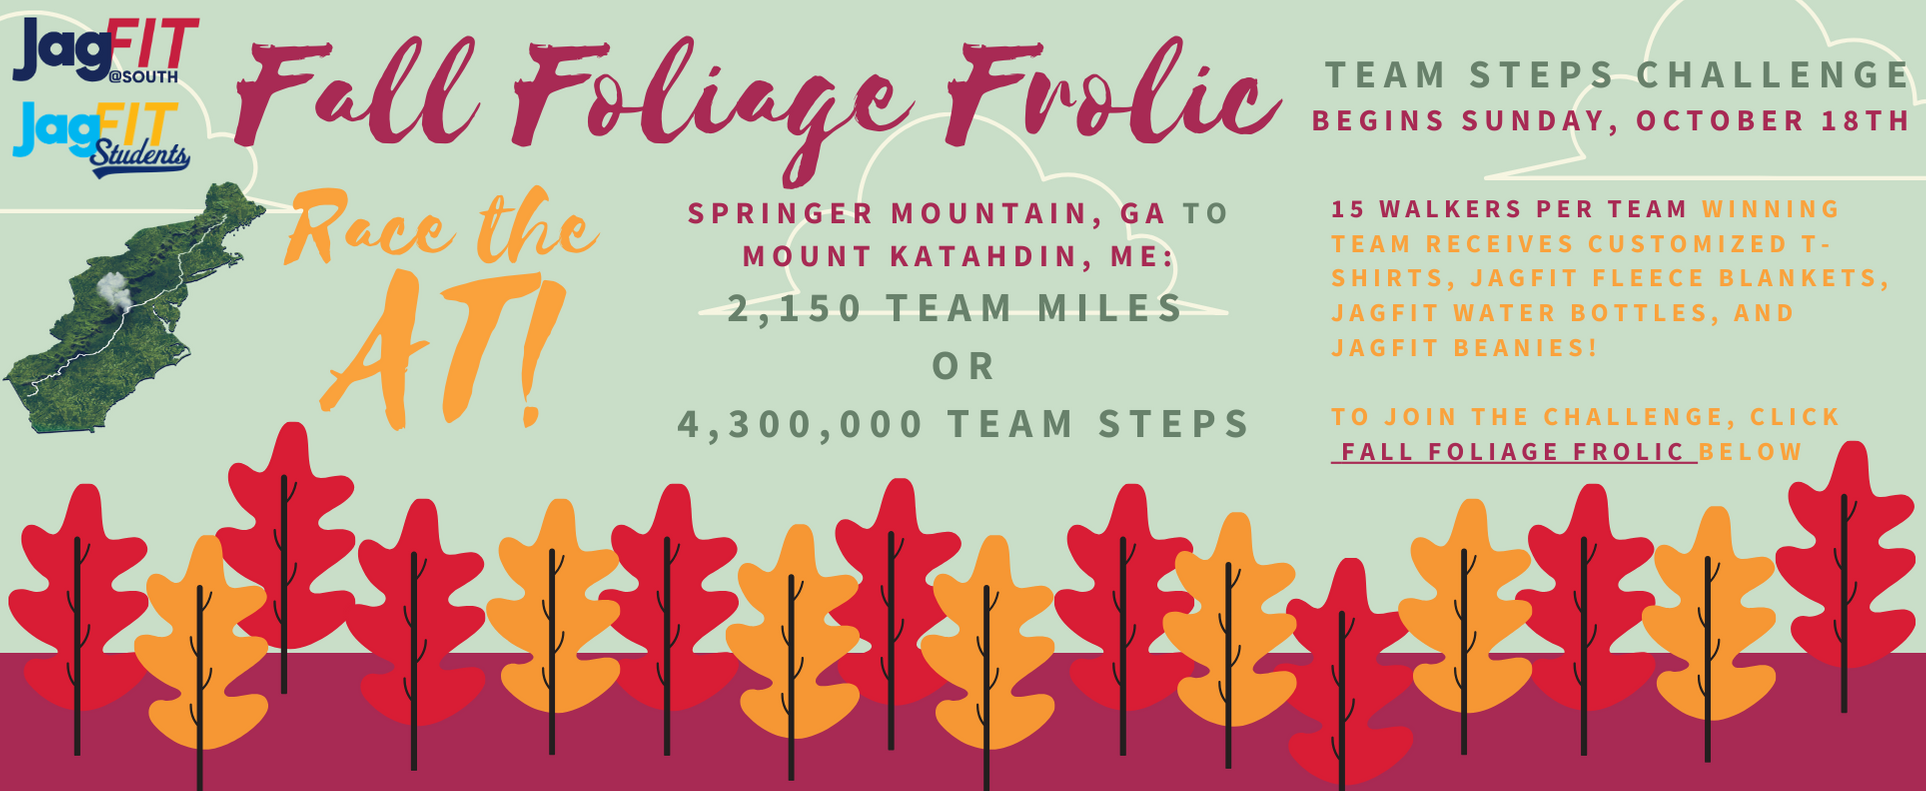 Fall Foliage Frolic Contest Information read below.